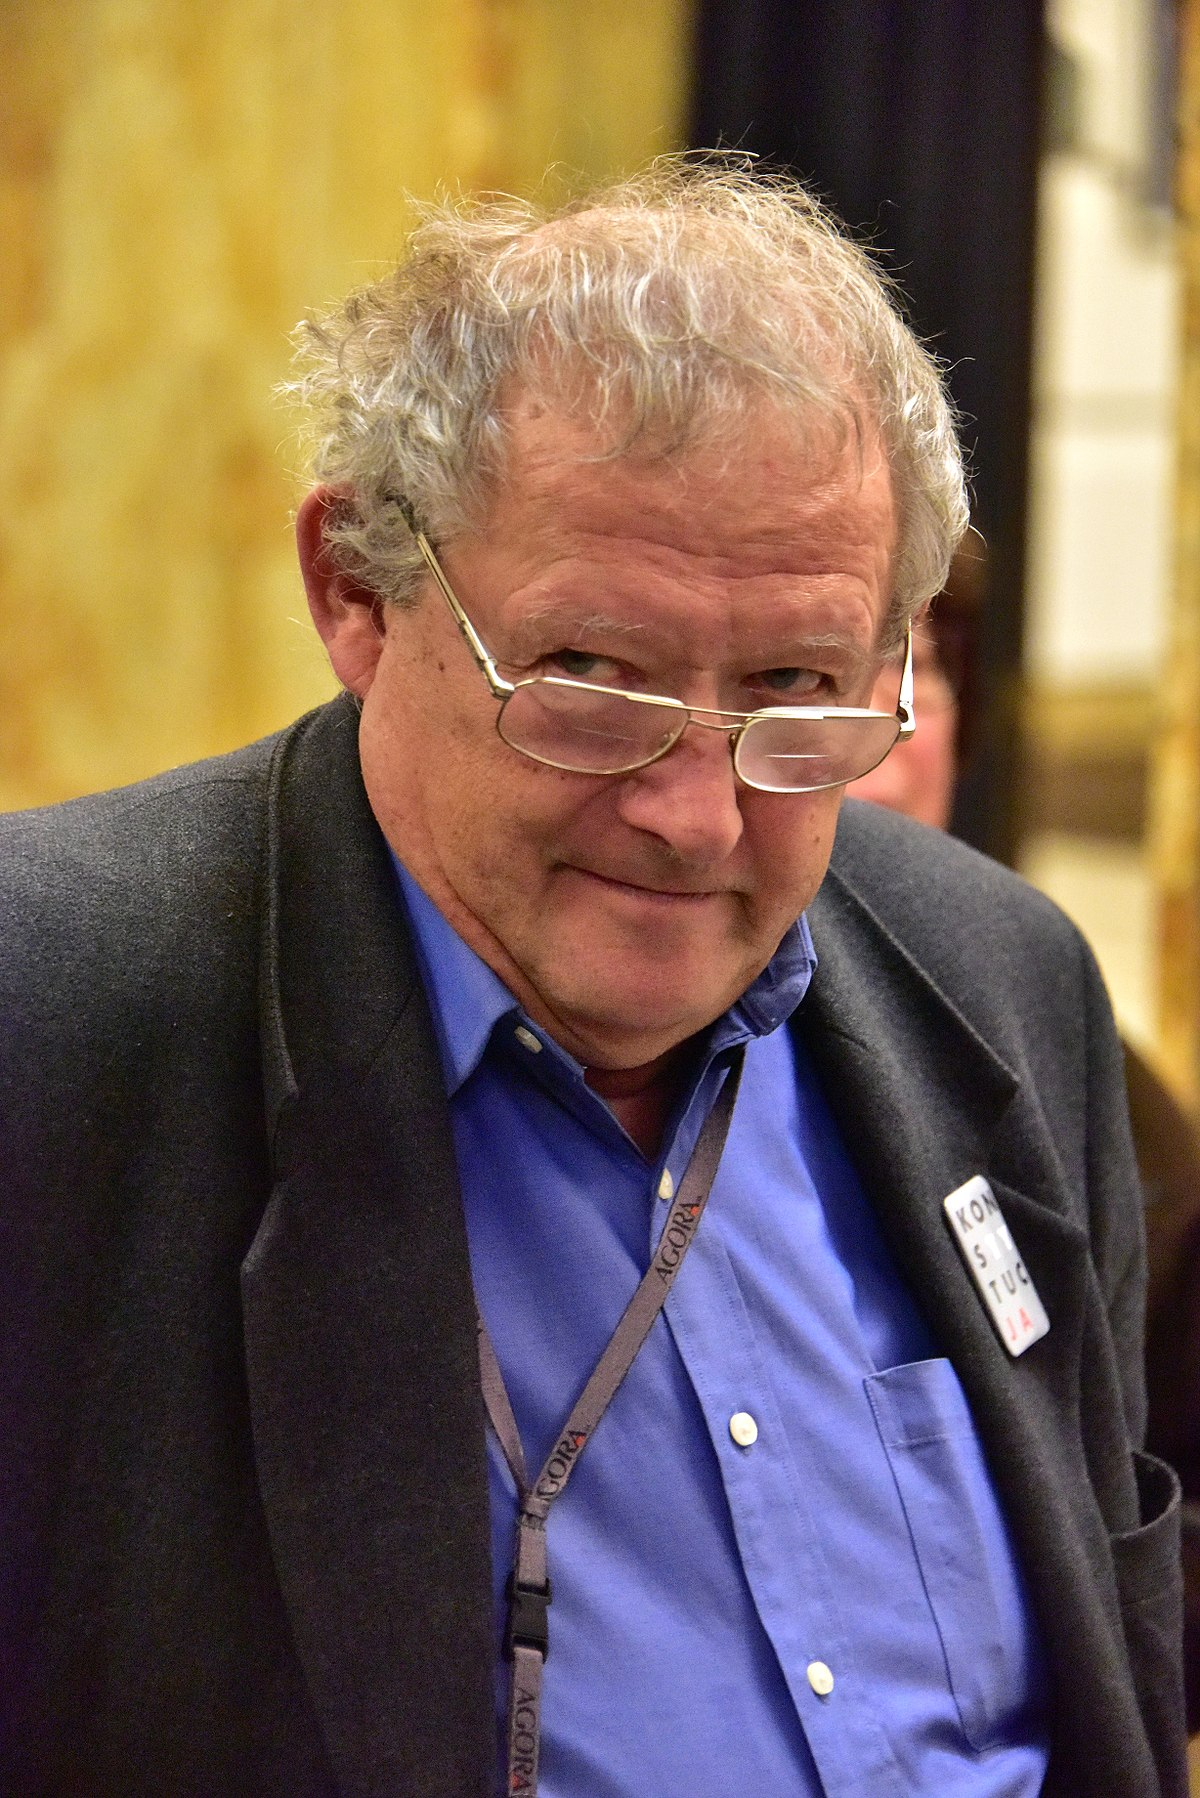 Adam Michnik Wikipedia